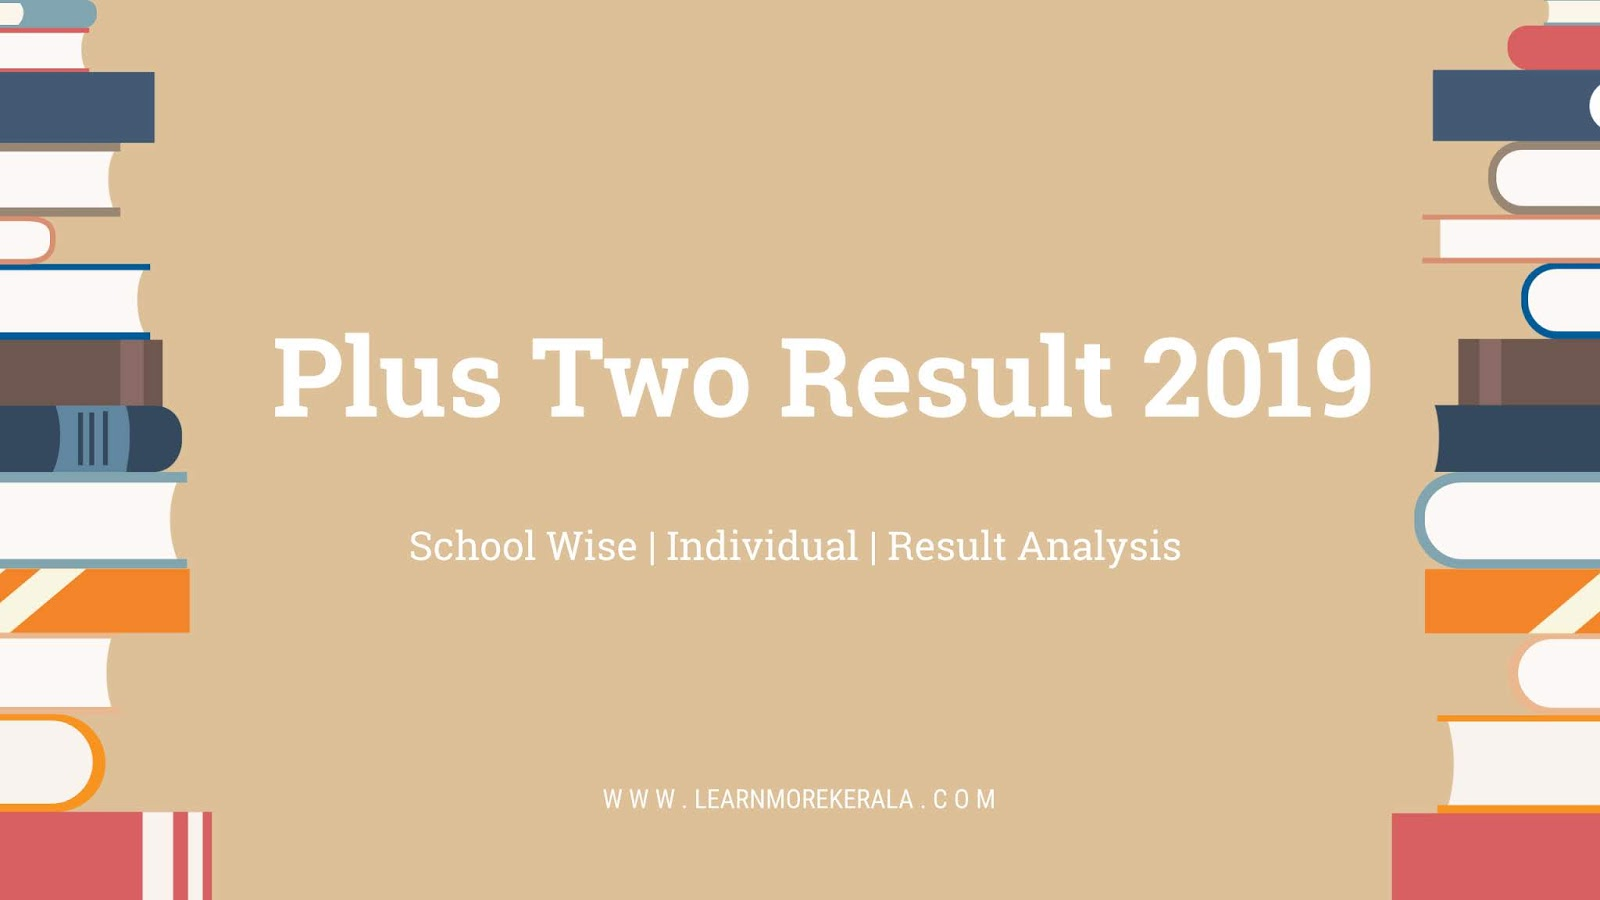 plus two result 2019